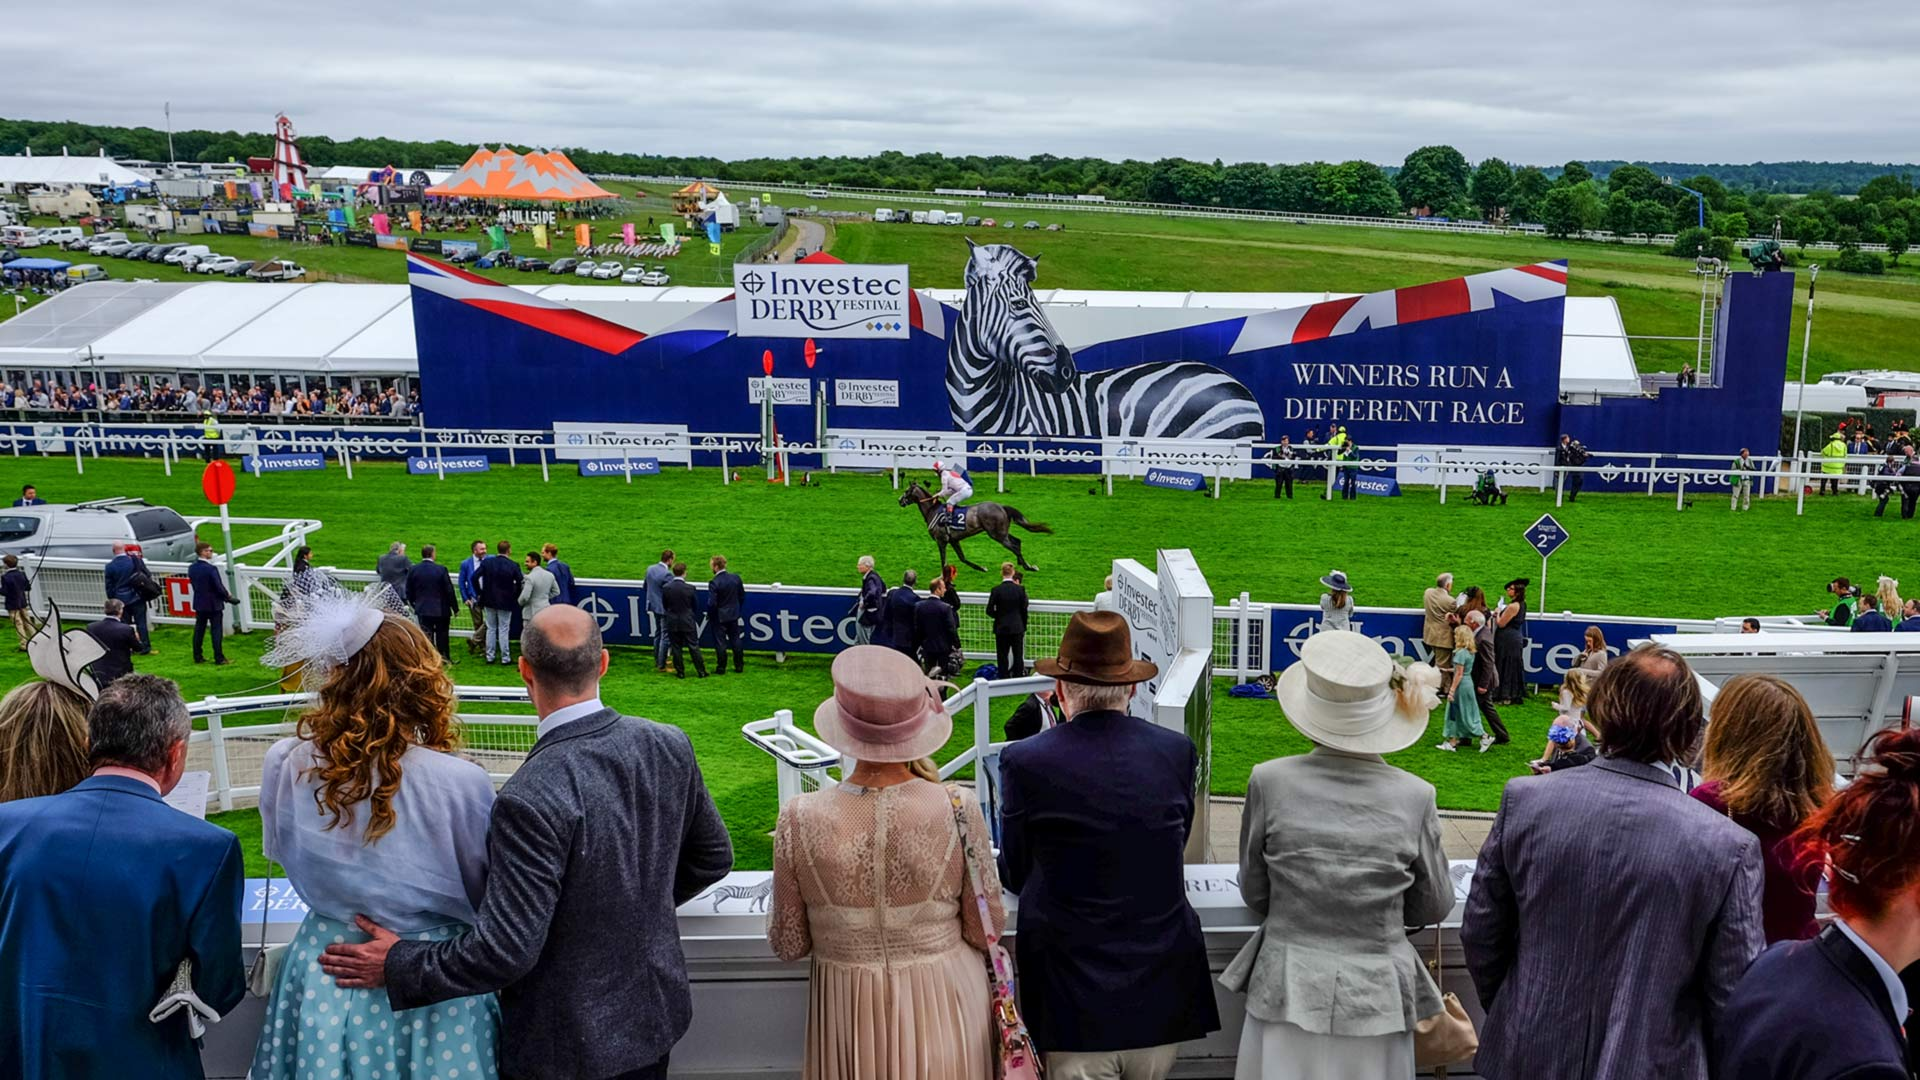 Five reasons to go to the Investec Derby Festival